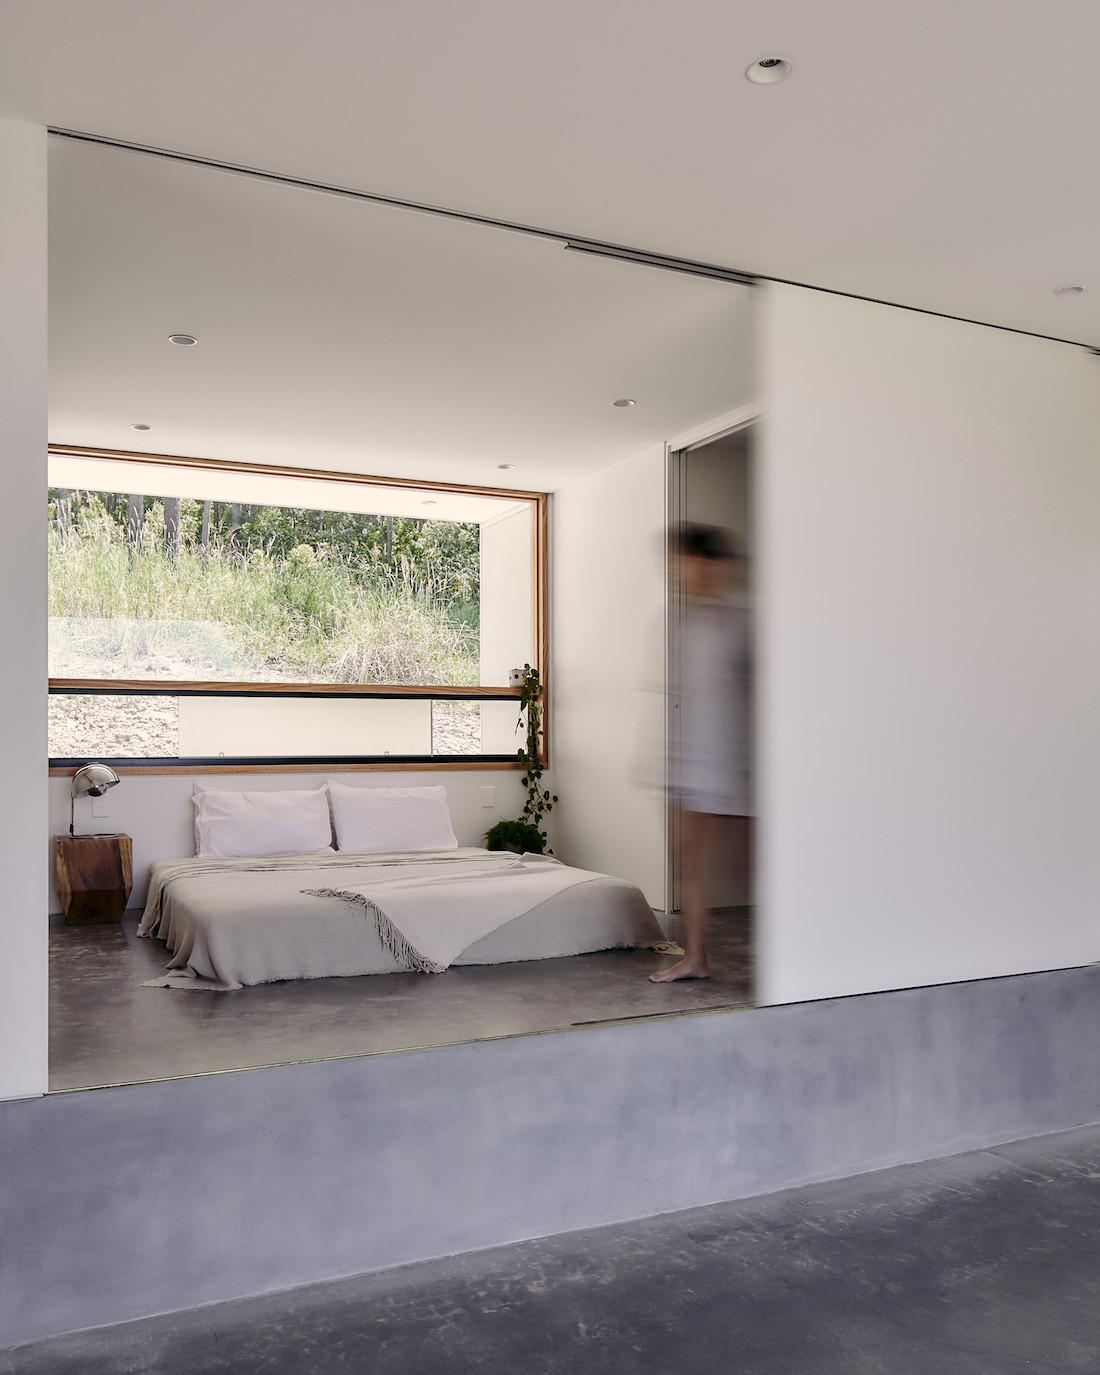 A bed sits on raised, polished concrete floor of the A-CH Yandina Sunrise home.